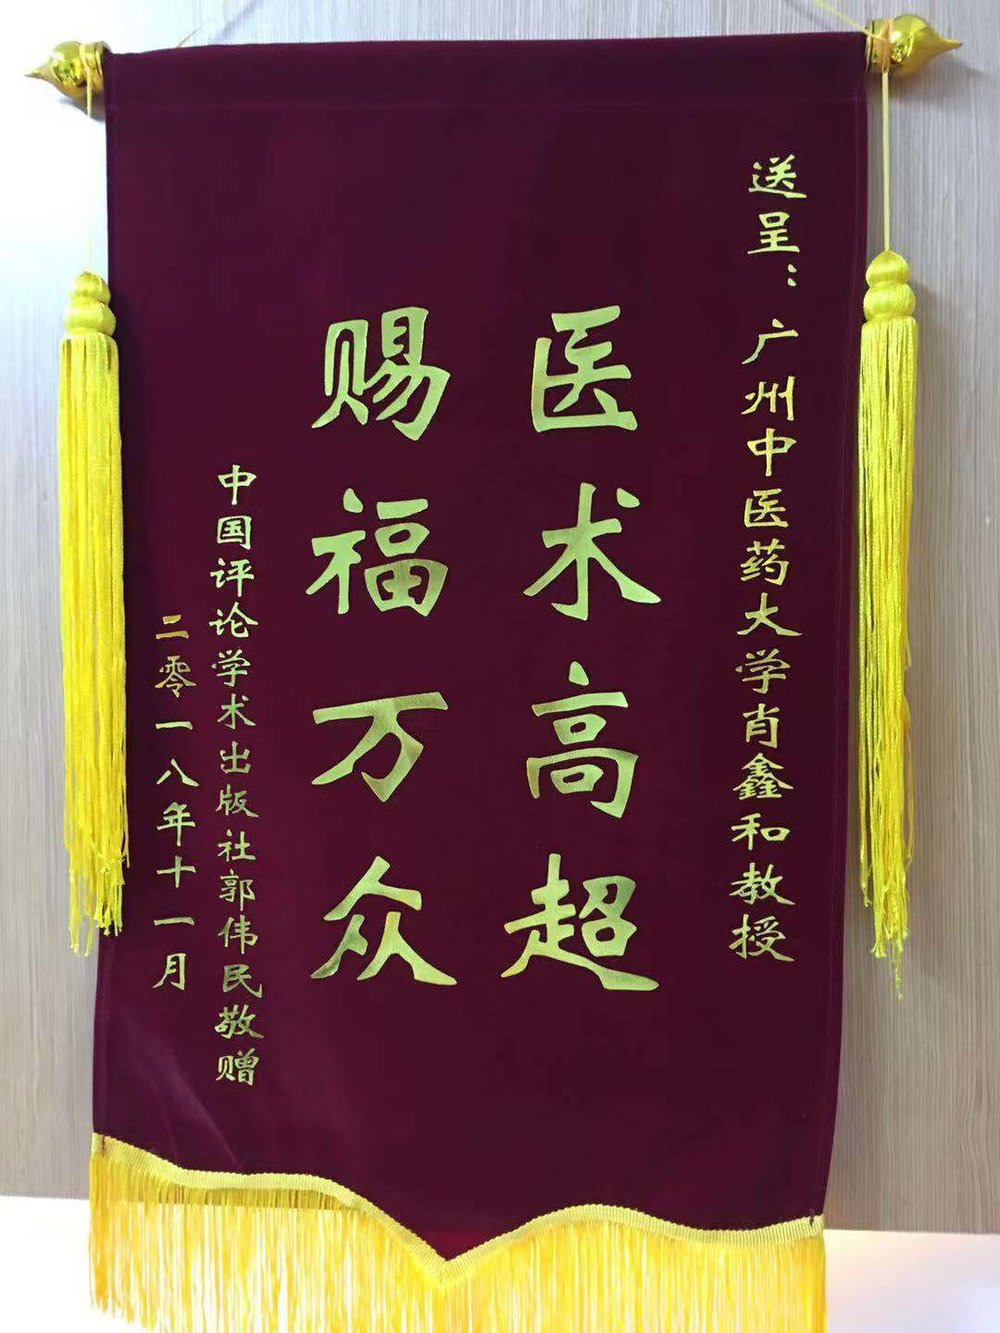 Thank you flag to Prof. Xiao